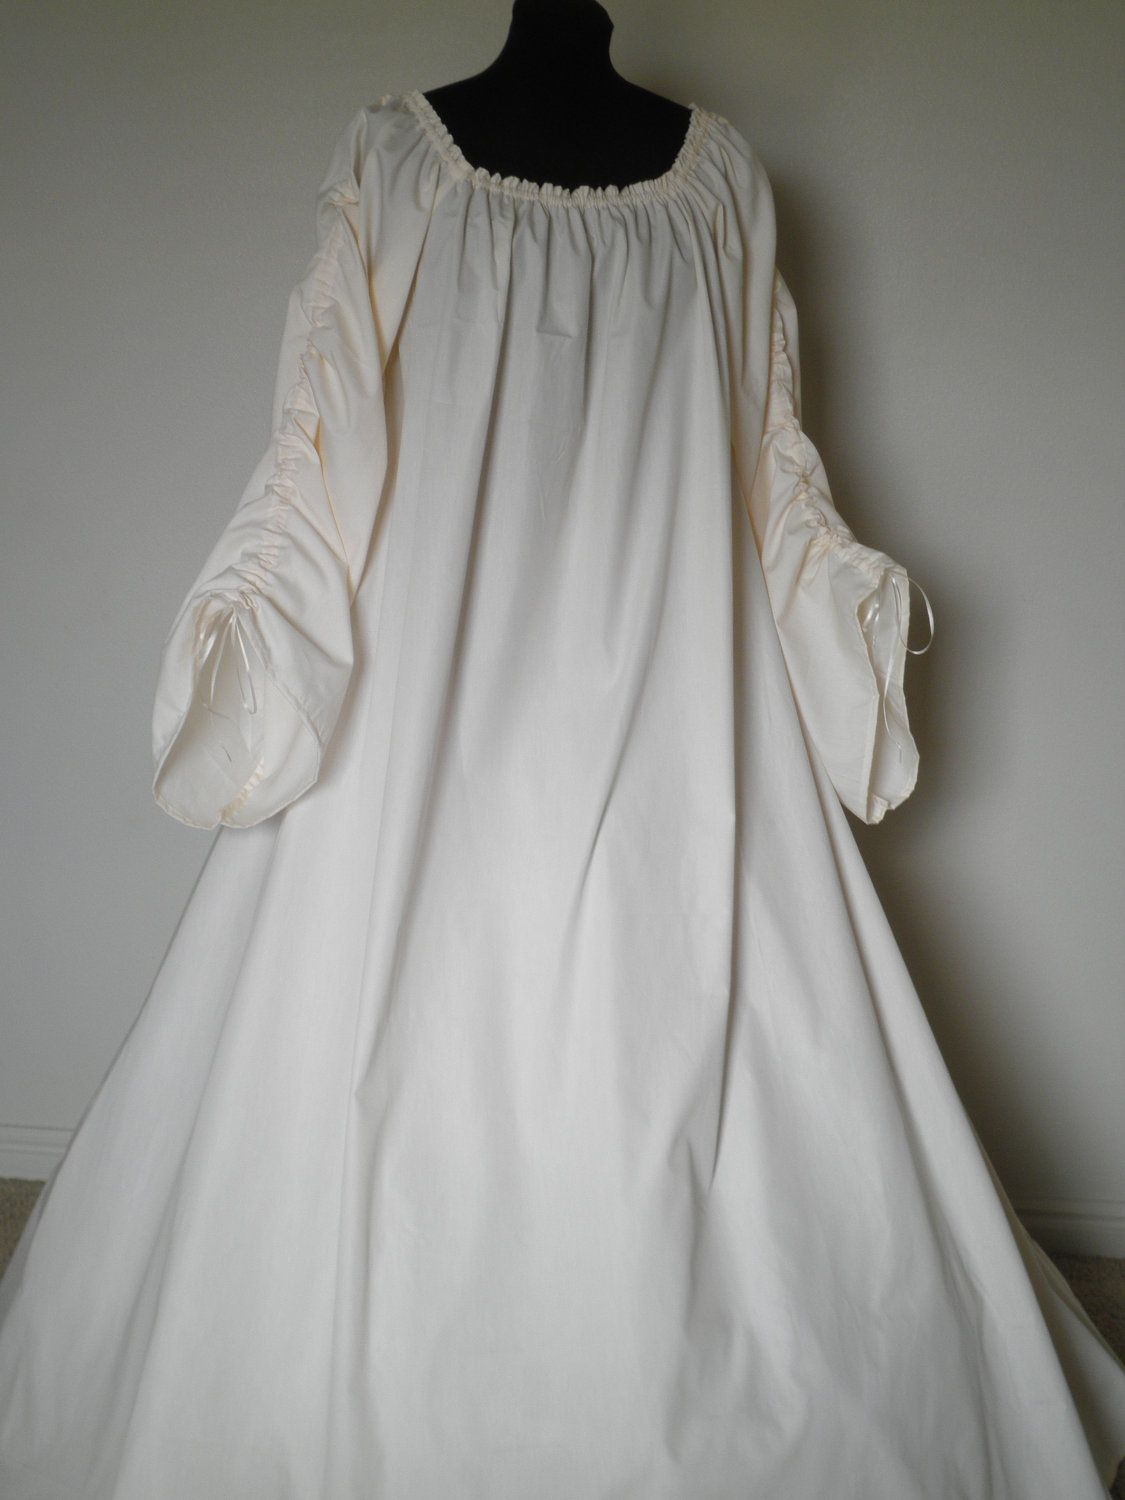 Full-length Beautiful Irish Leine Chemise Renaissance Under Dress ...